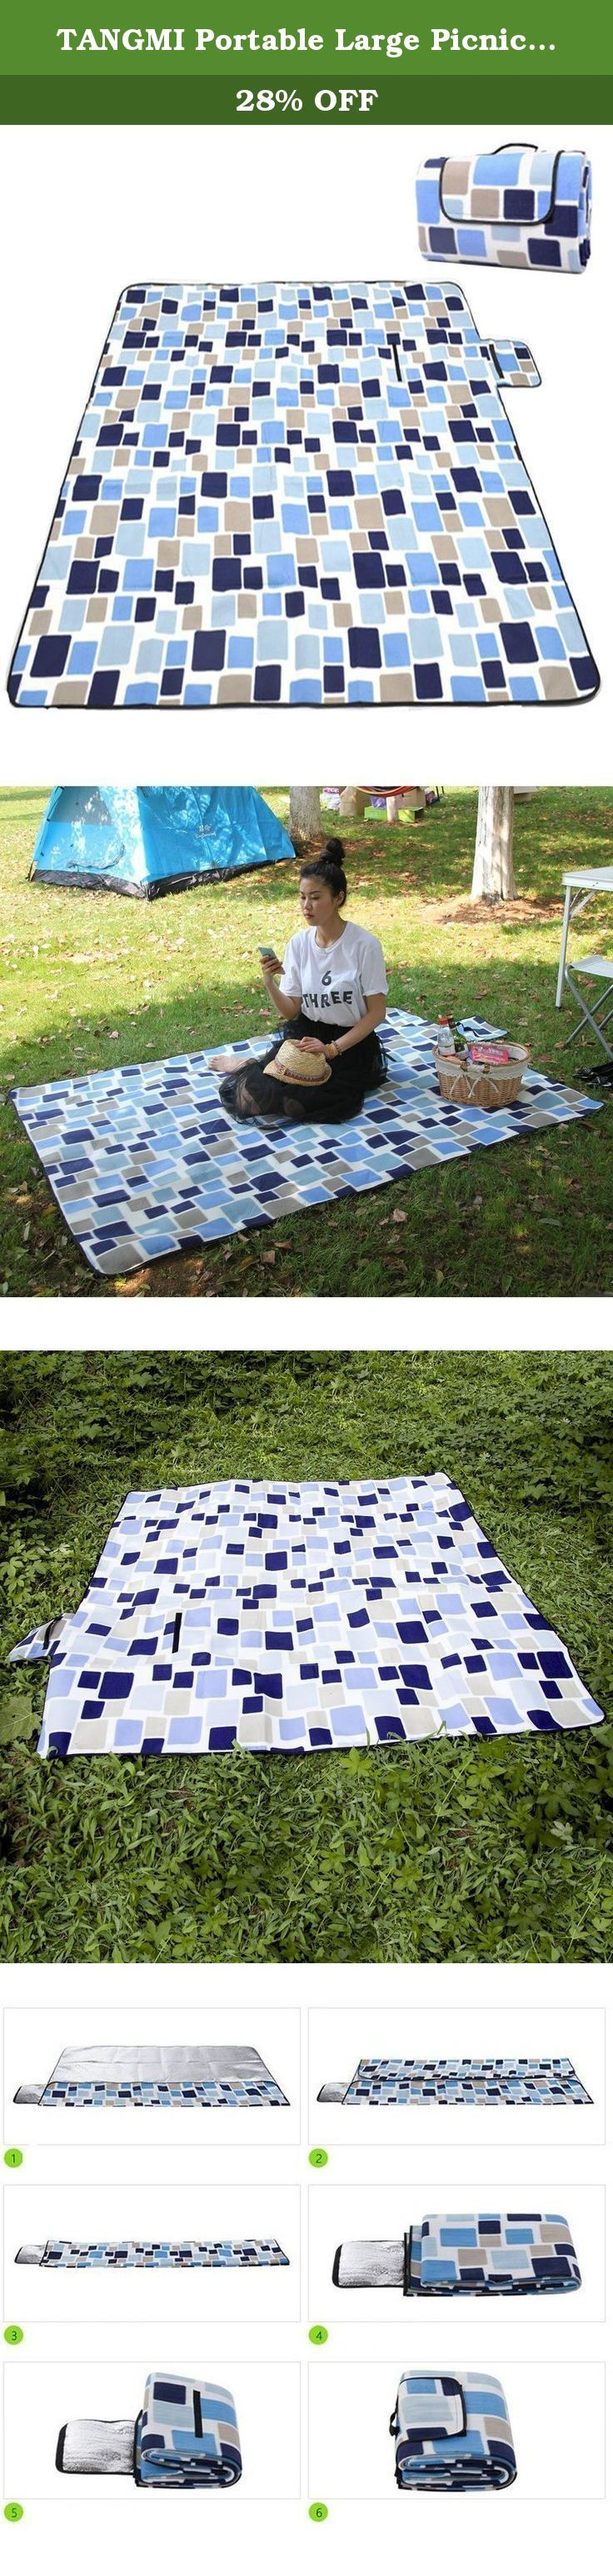 """TANGMI Portable Large Picnic & Outdoor Blanket 79""""x79"""" Water-Resistant Muti-purpose Fleece Aluminum Foil Back Pad with 2MM Sponge Foldable Blanket Pad (Grid). PRODUCT WEITHT-1040G ITEM SIZE- Fold Out: 79"""" x 79"""" (200cm x 200cm), Fold Up: 9"""" x 12"""" (27cm X 40cm) MULTIFUNCTIONAL PICNIC BLANKET-Ideal for all outdoor and indoor activities such as picnics, BBQs, camping, festivals & sporting events, perfect for days out to the beach or park, summer festivals. Also extremely useful as a vehicle..."""